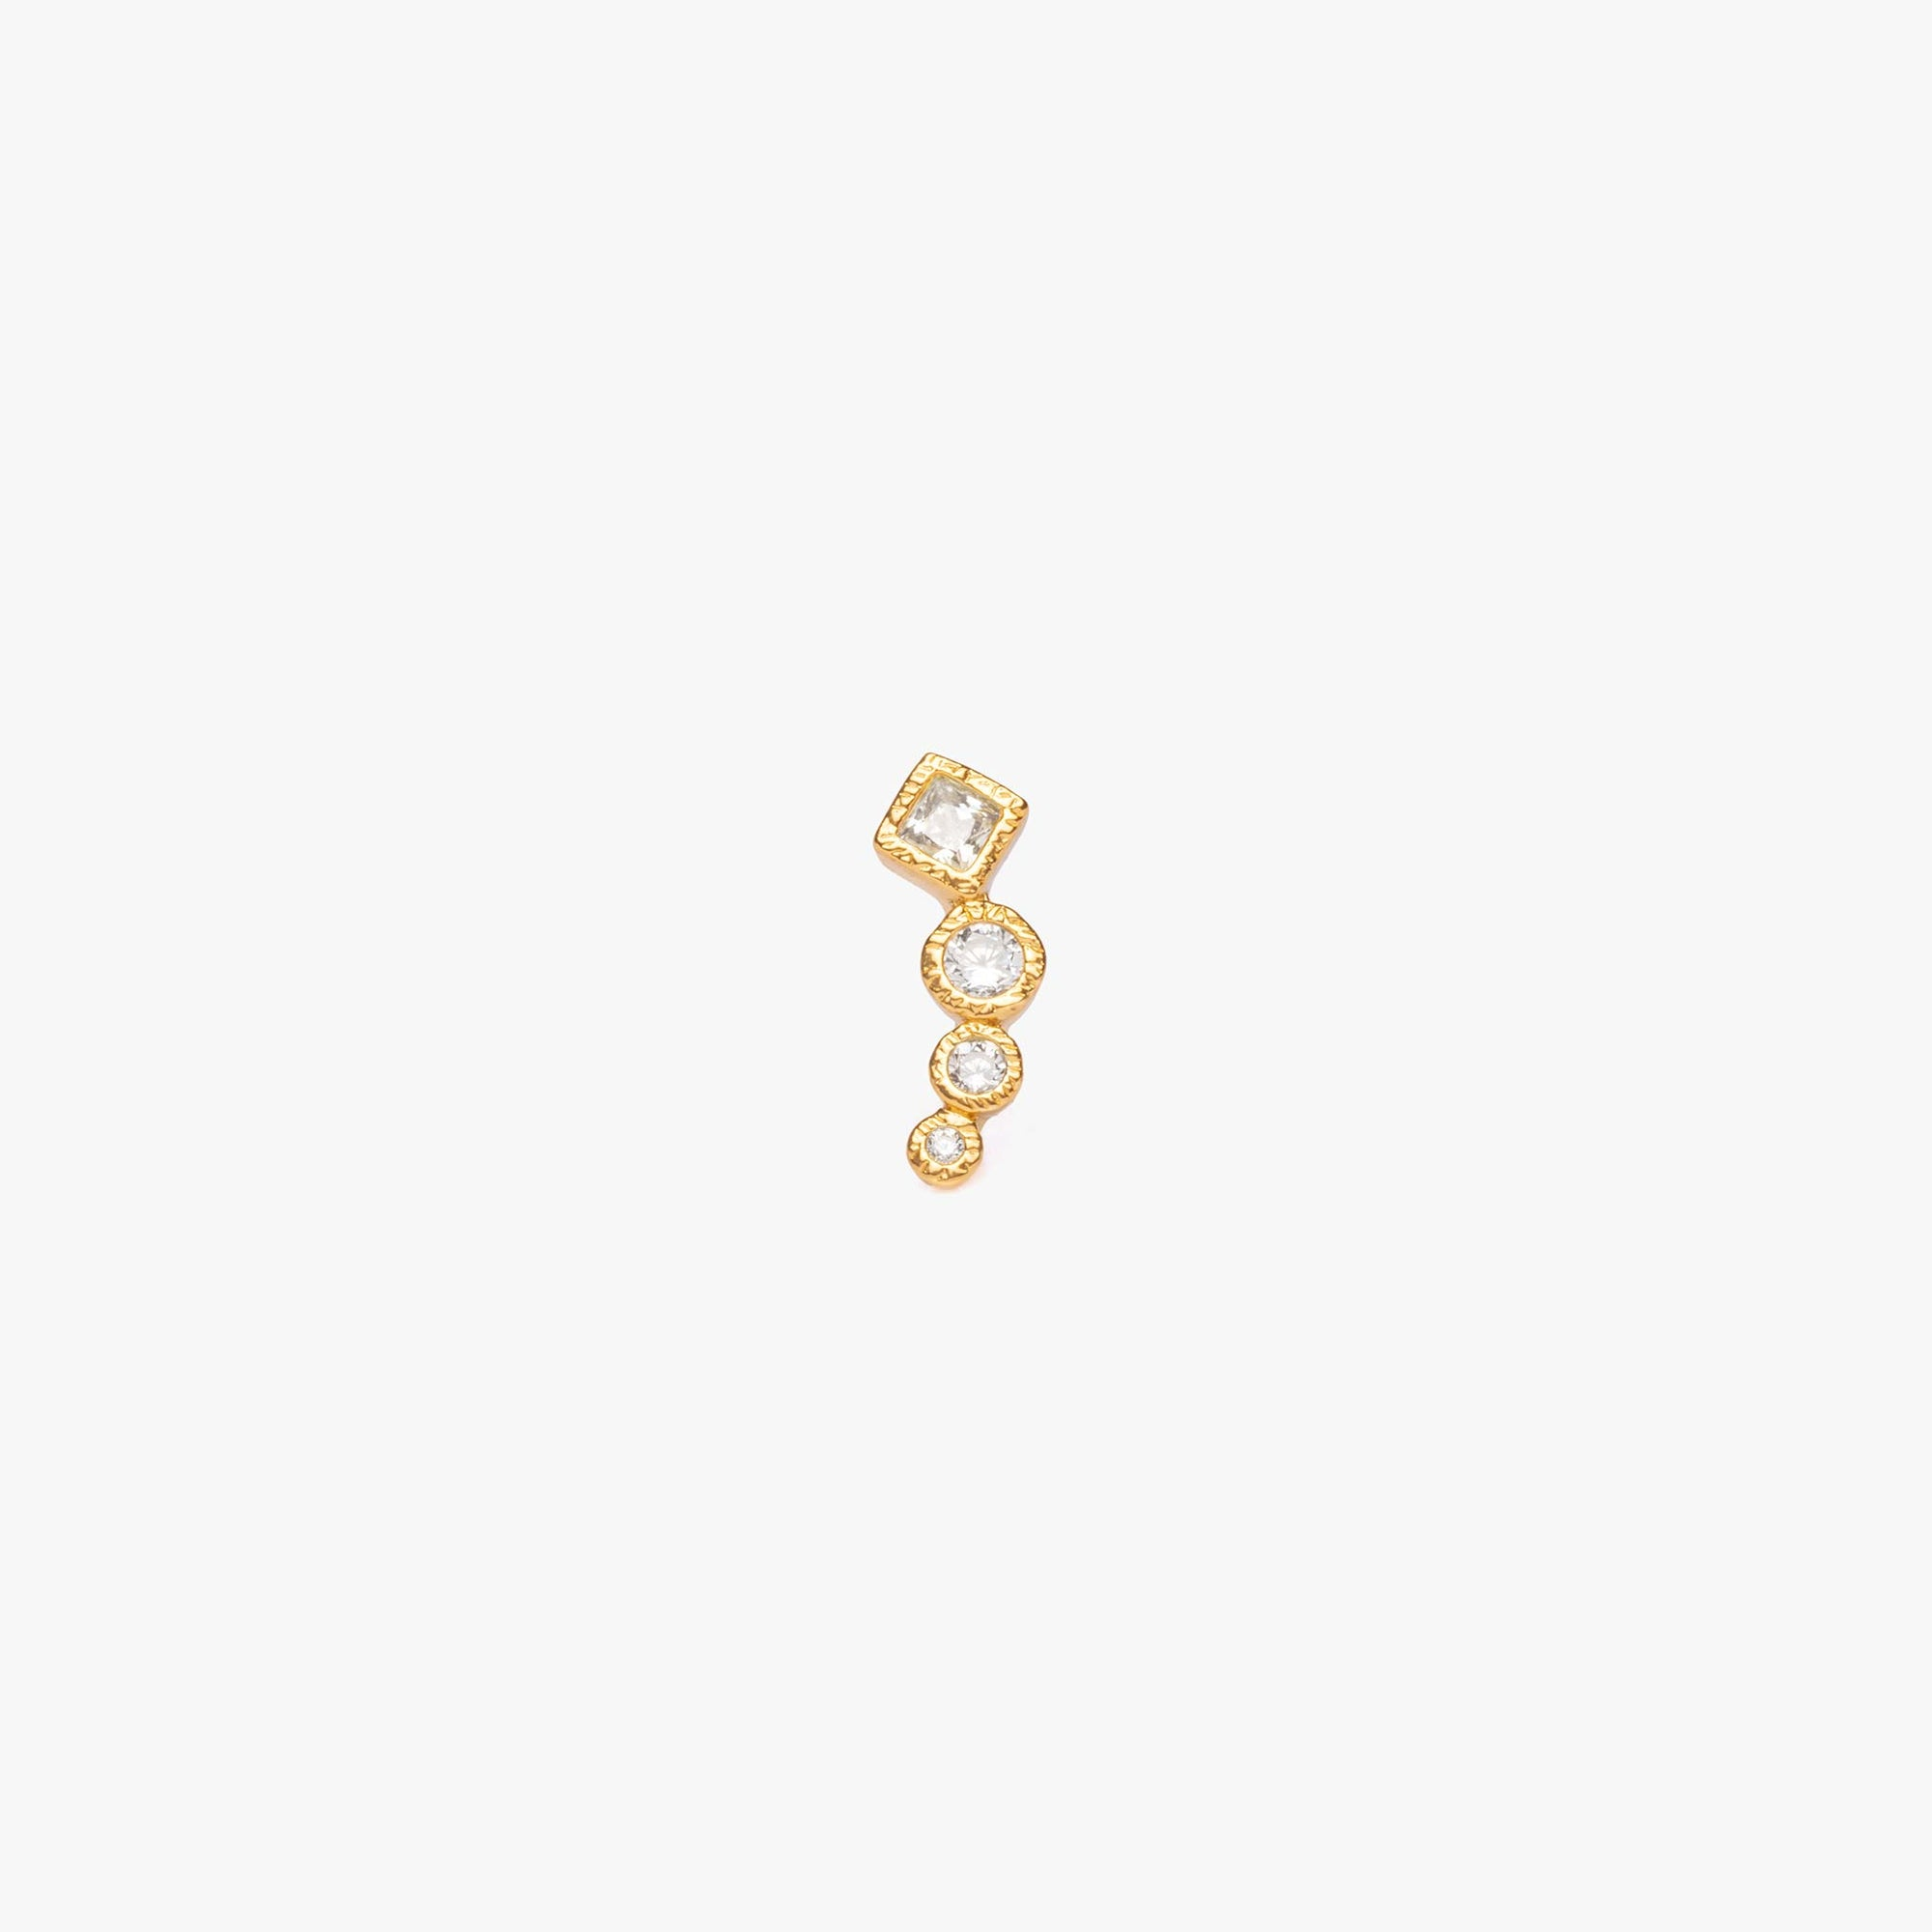 Gold Climber earring with CZ studs descending in size.